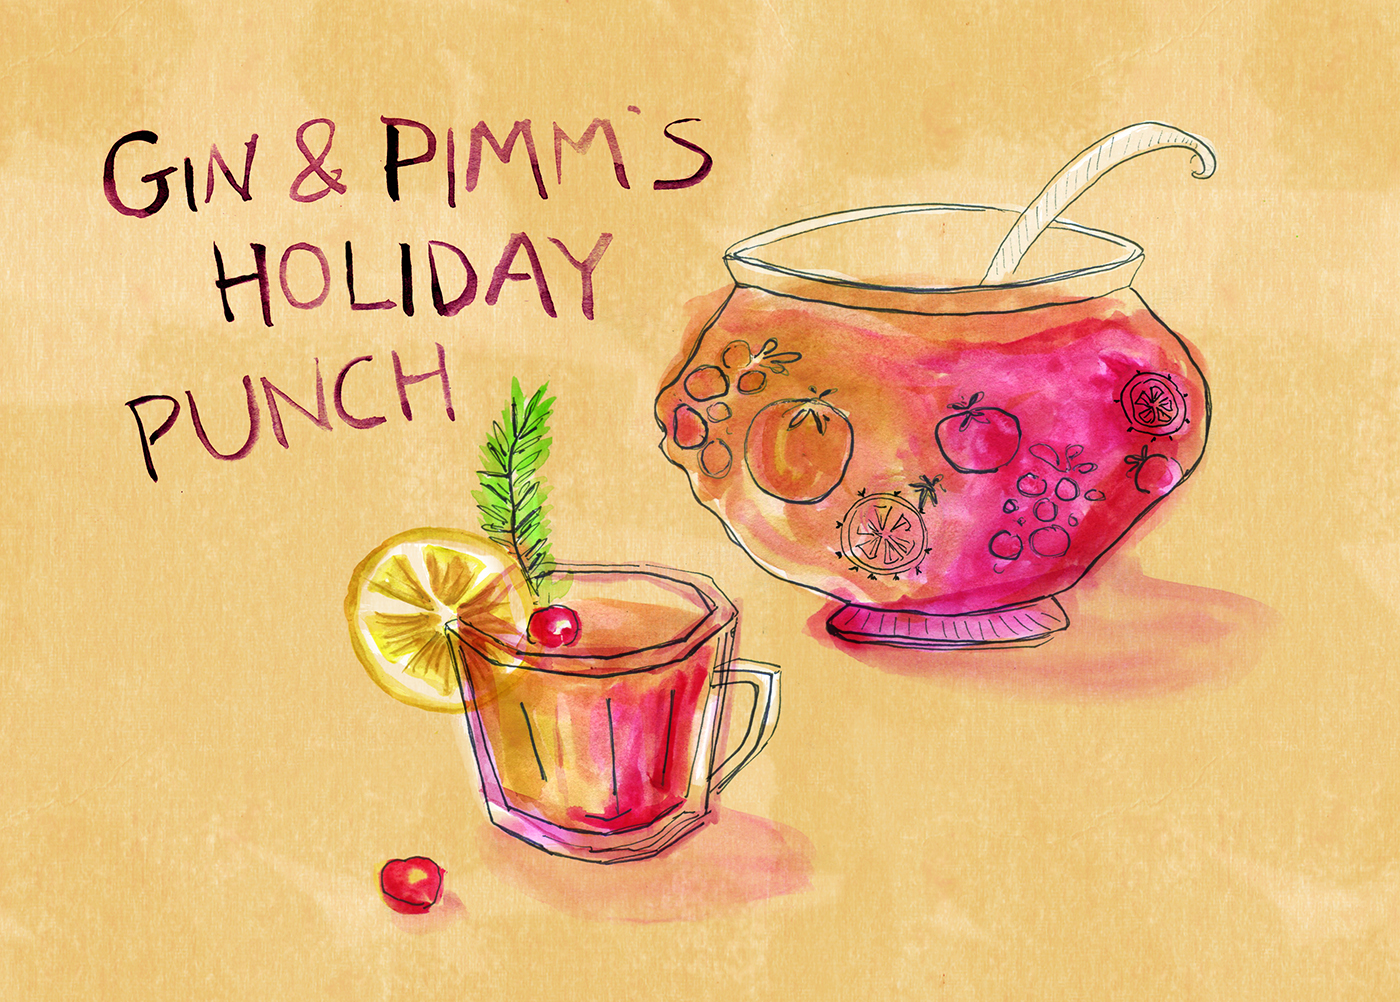 Gin and Pimm's Holiday Punch, Holiday Cocktails, Christmas, Hanukkah, Minty's Table, Lauren Monaco Illustration